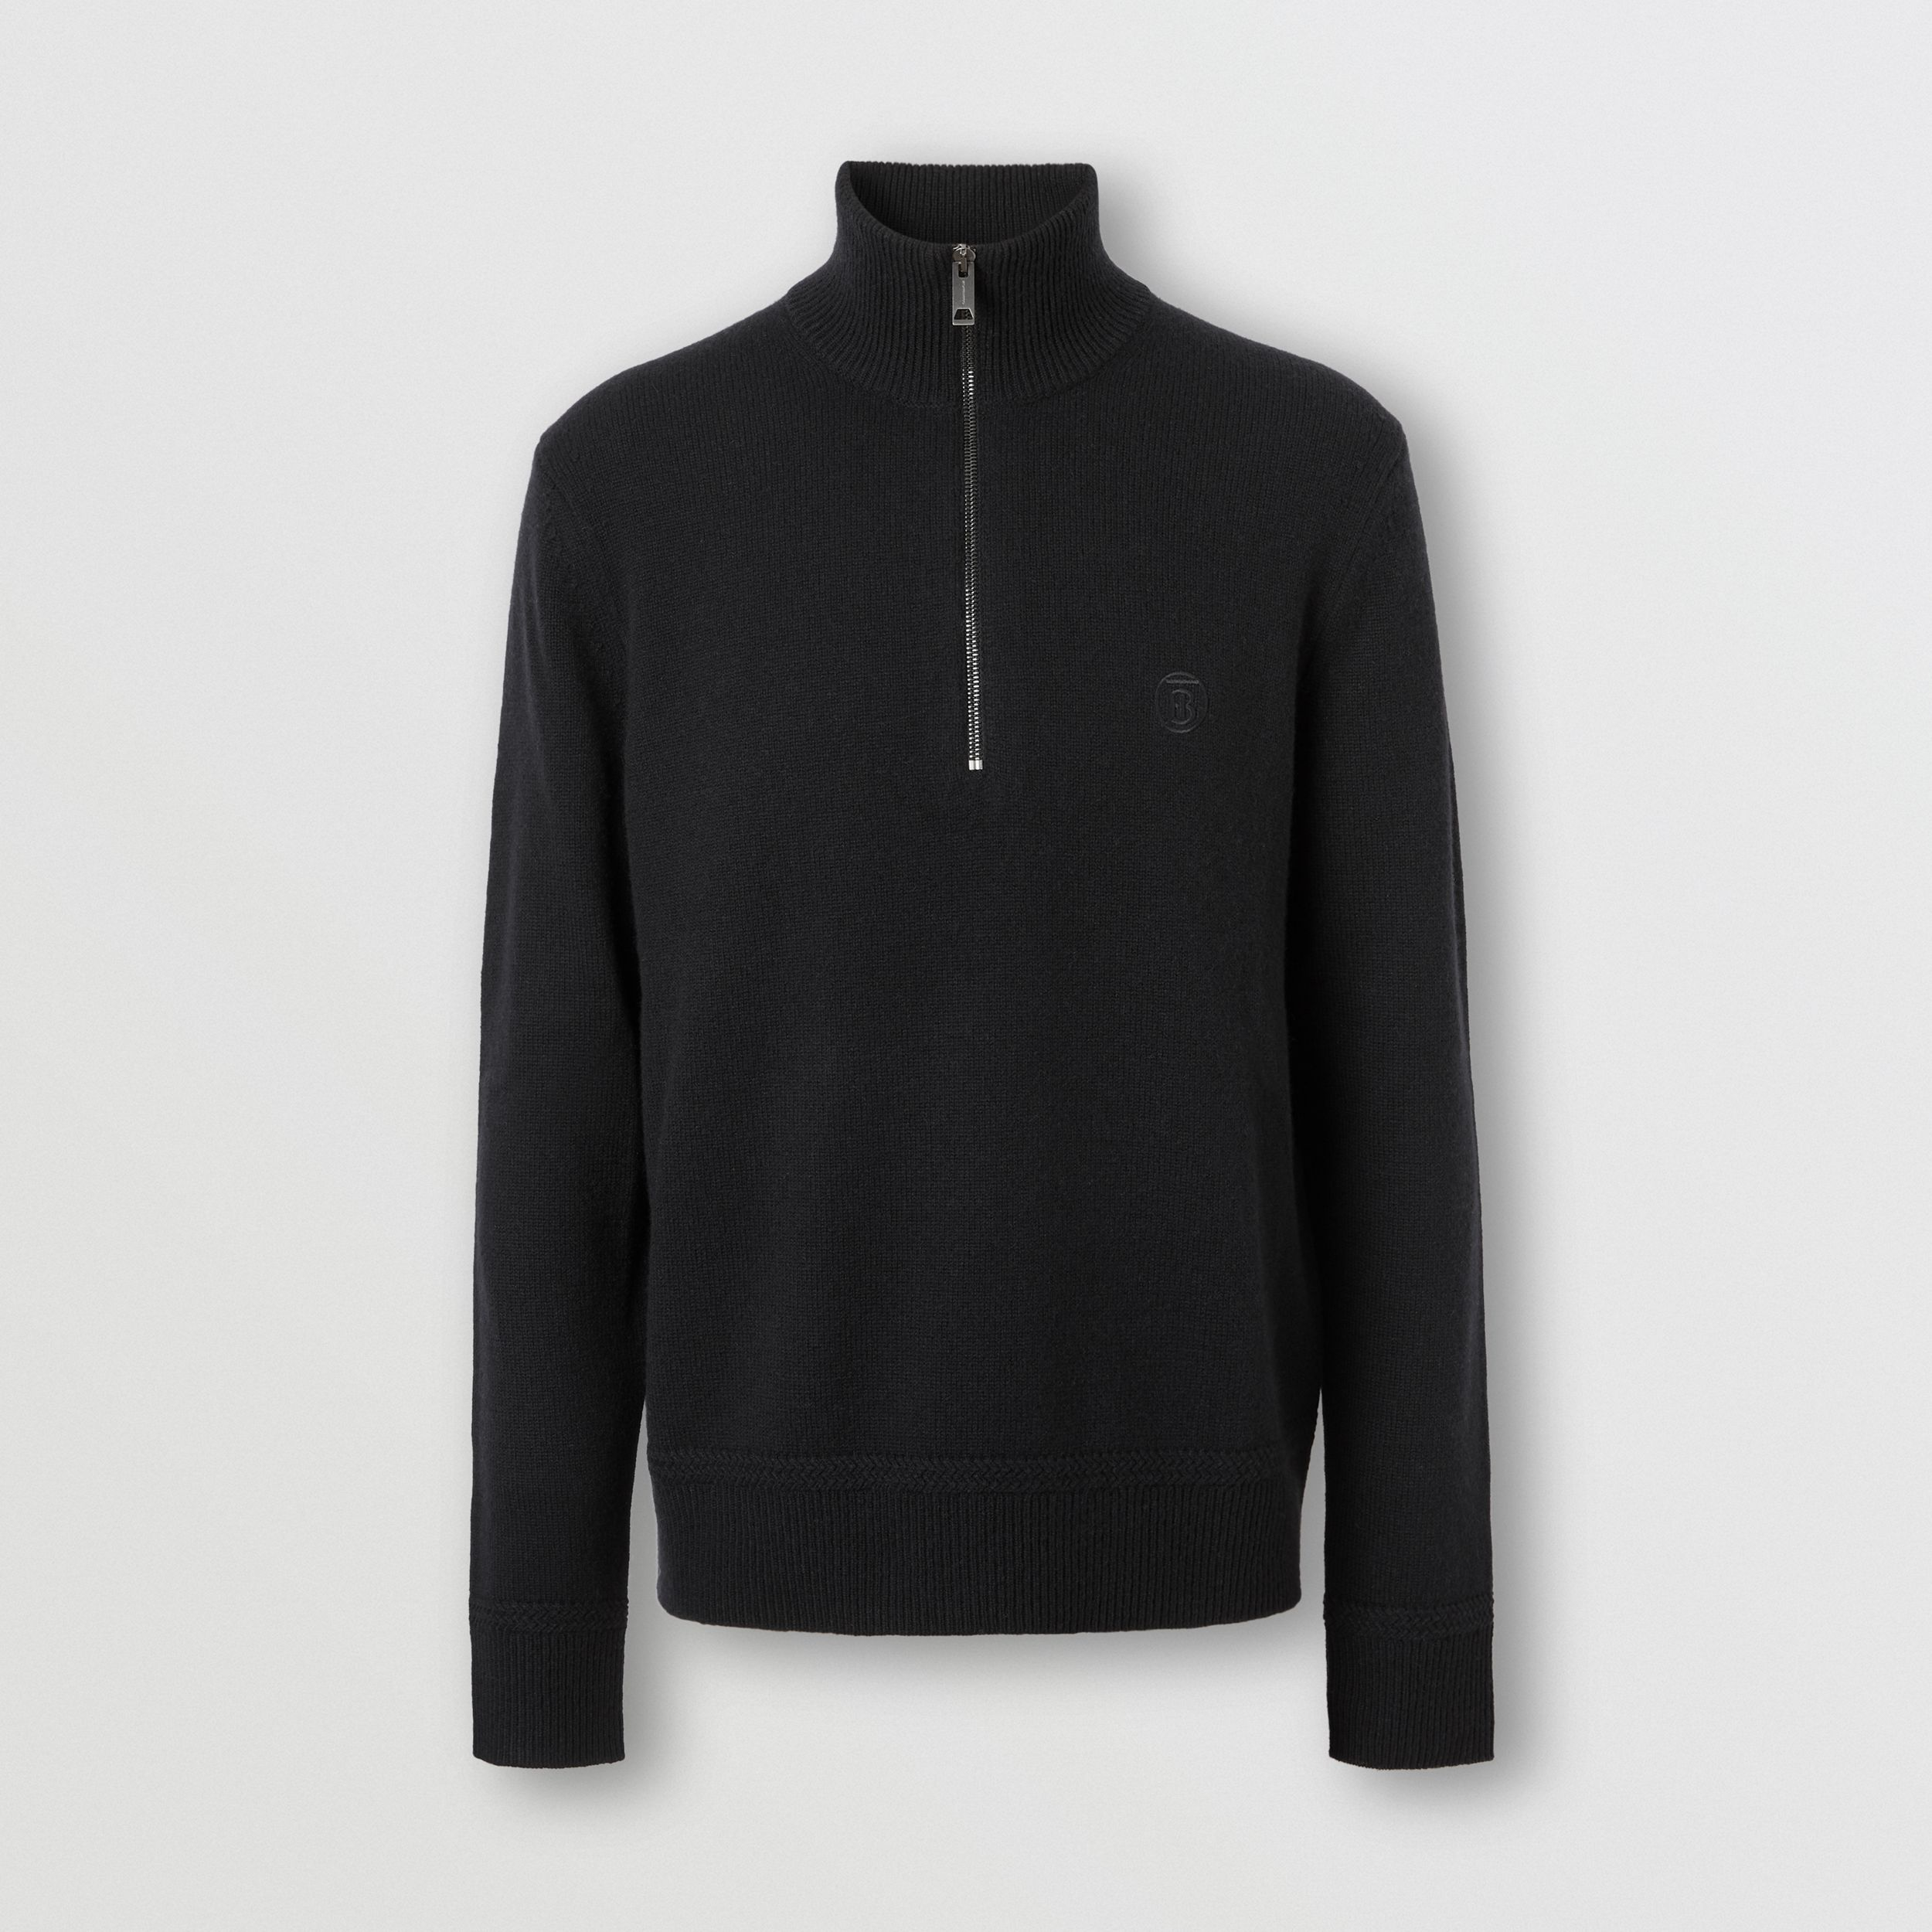 Monogram Motif Cashmere Funnel Neck Sweater in Black - Men | Burberry United Kingdom - 4